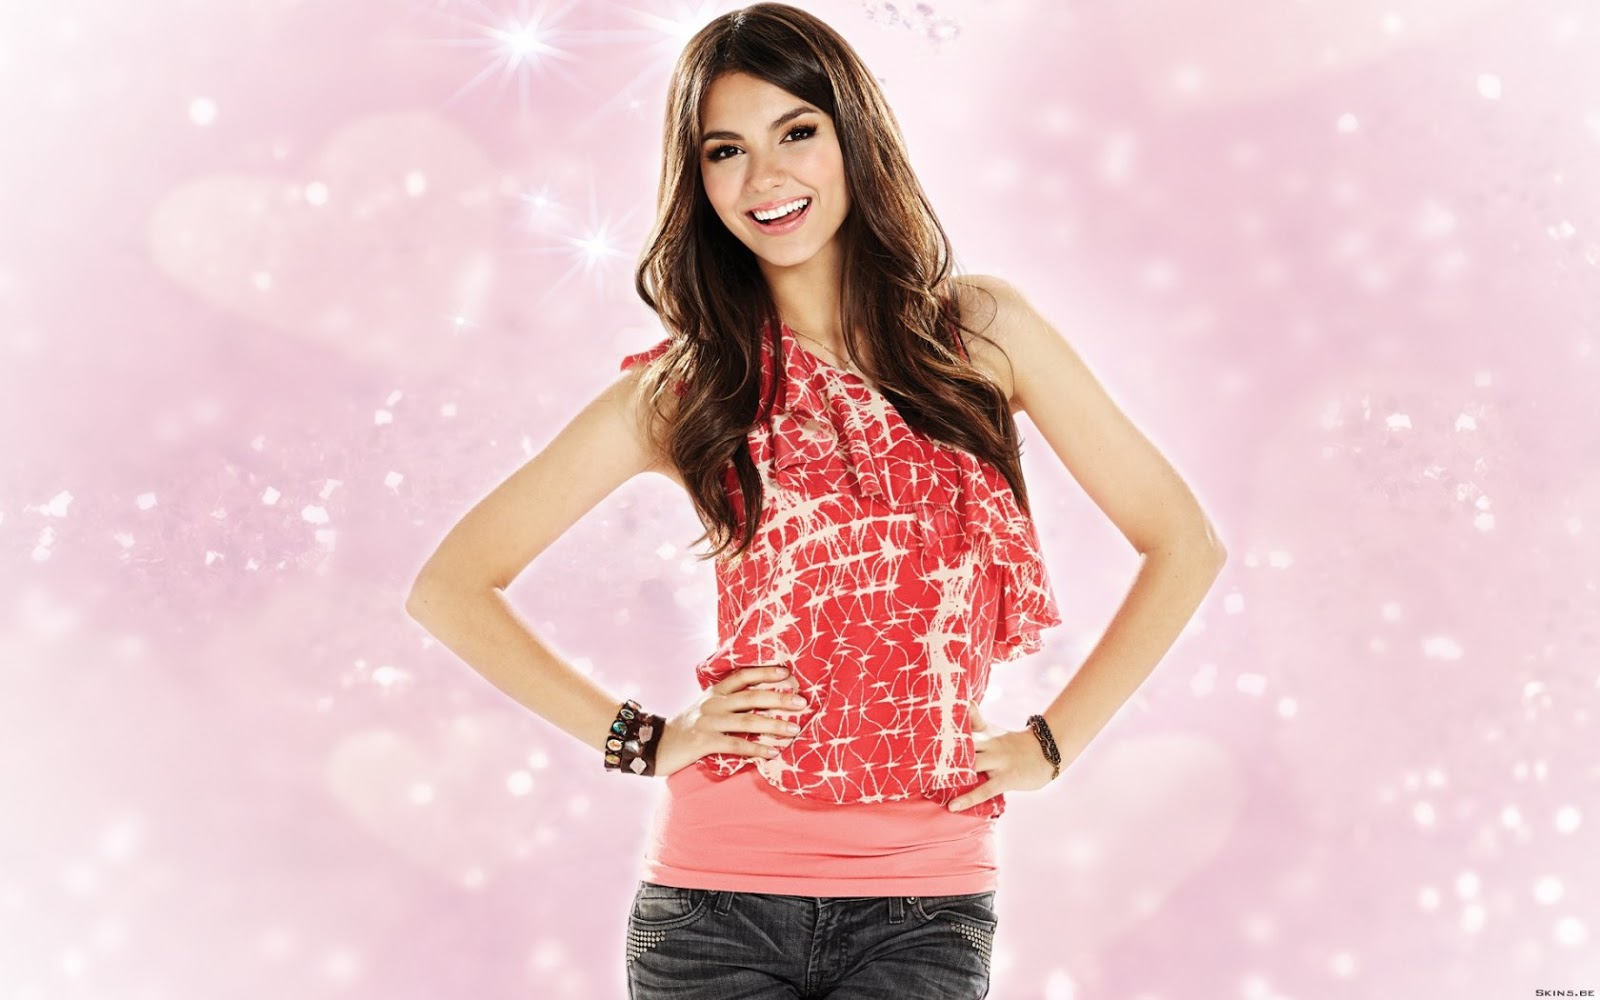 Victoria Justice Hot Images 4